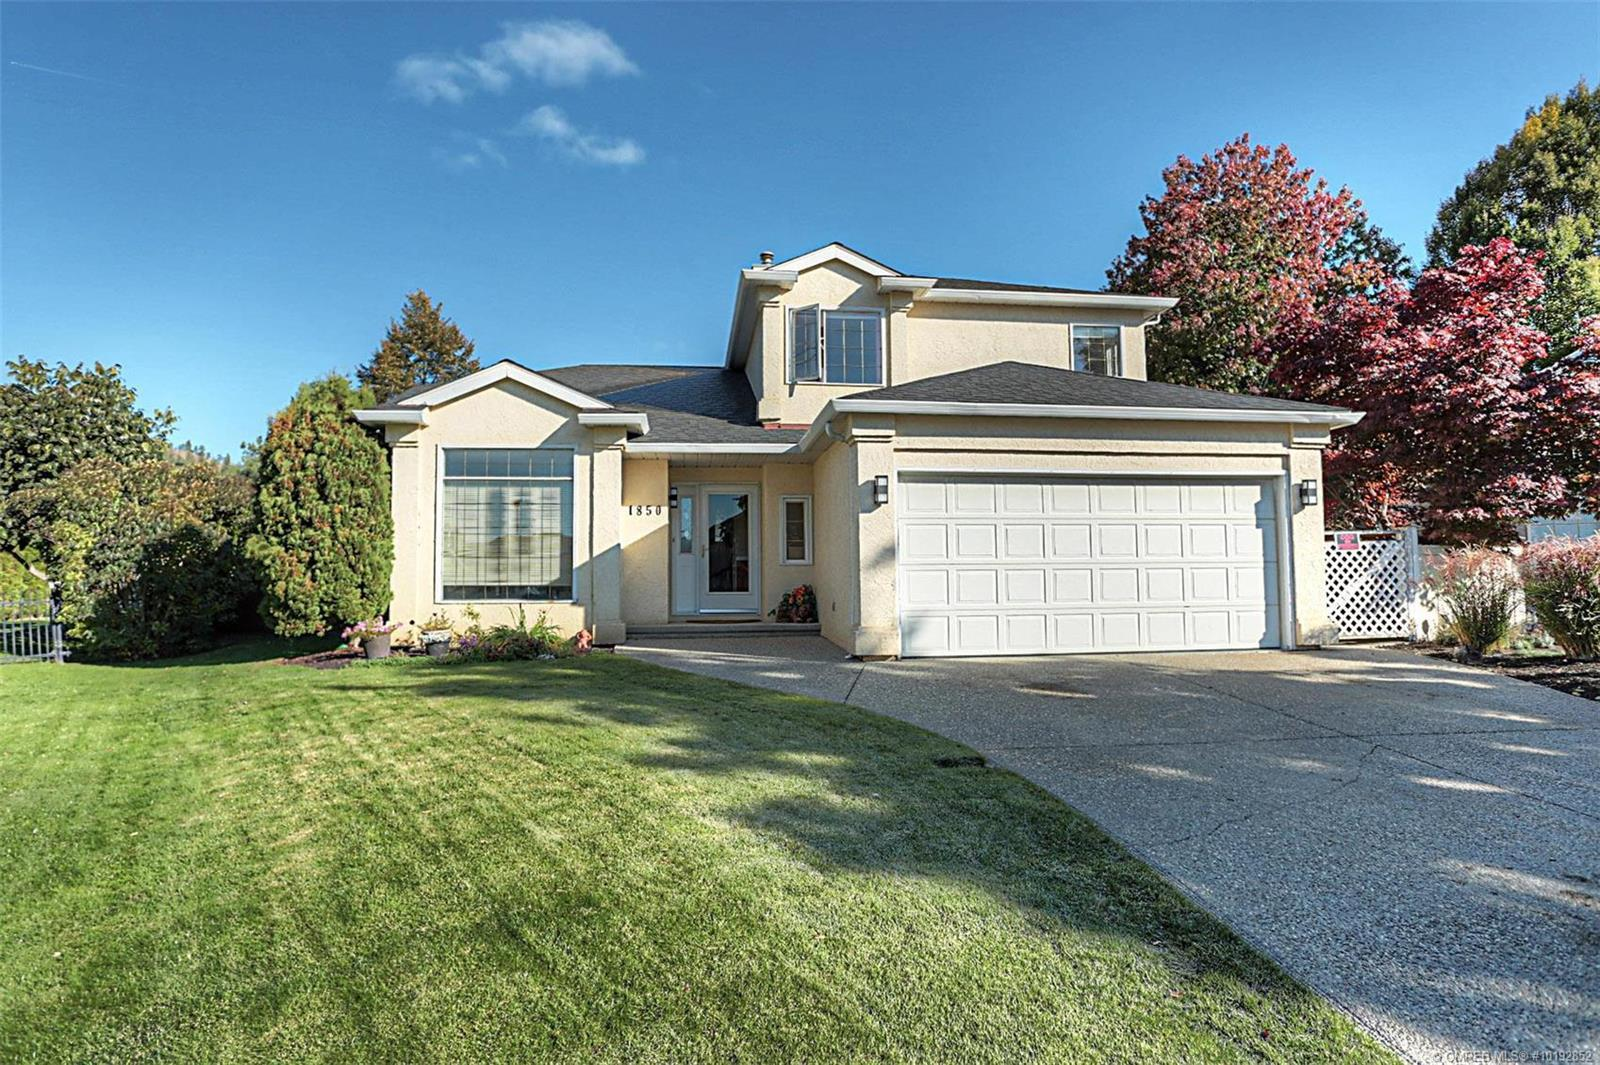 Removed: 1850 Portland Place, Kelowna, BC - Removed on 2019-11-12 06:48:10